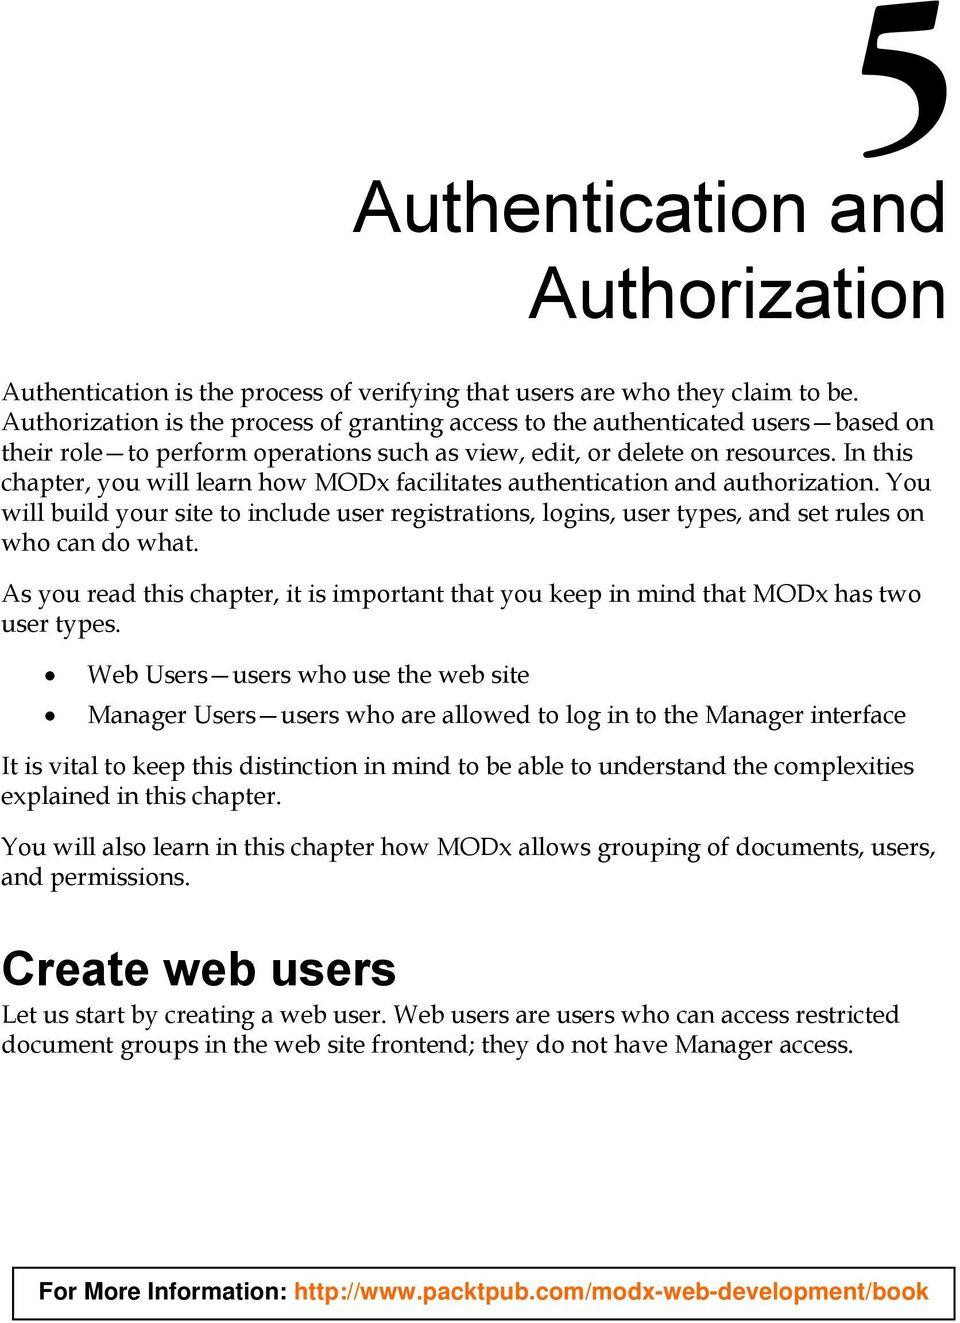 In this chapter, you will learn how MODx facilitates authentication and authorization. You will build your site to include user registrations, logins, user types, and set rules on who can do what.